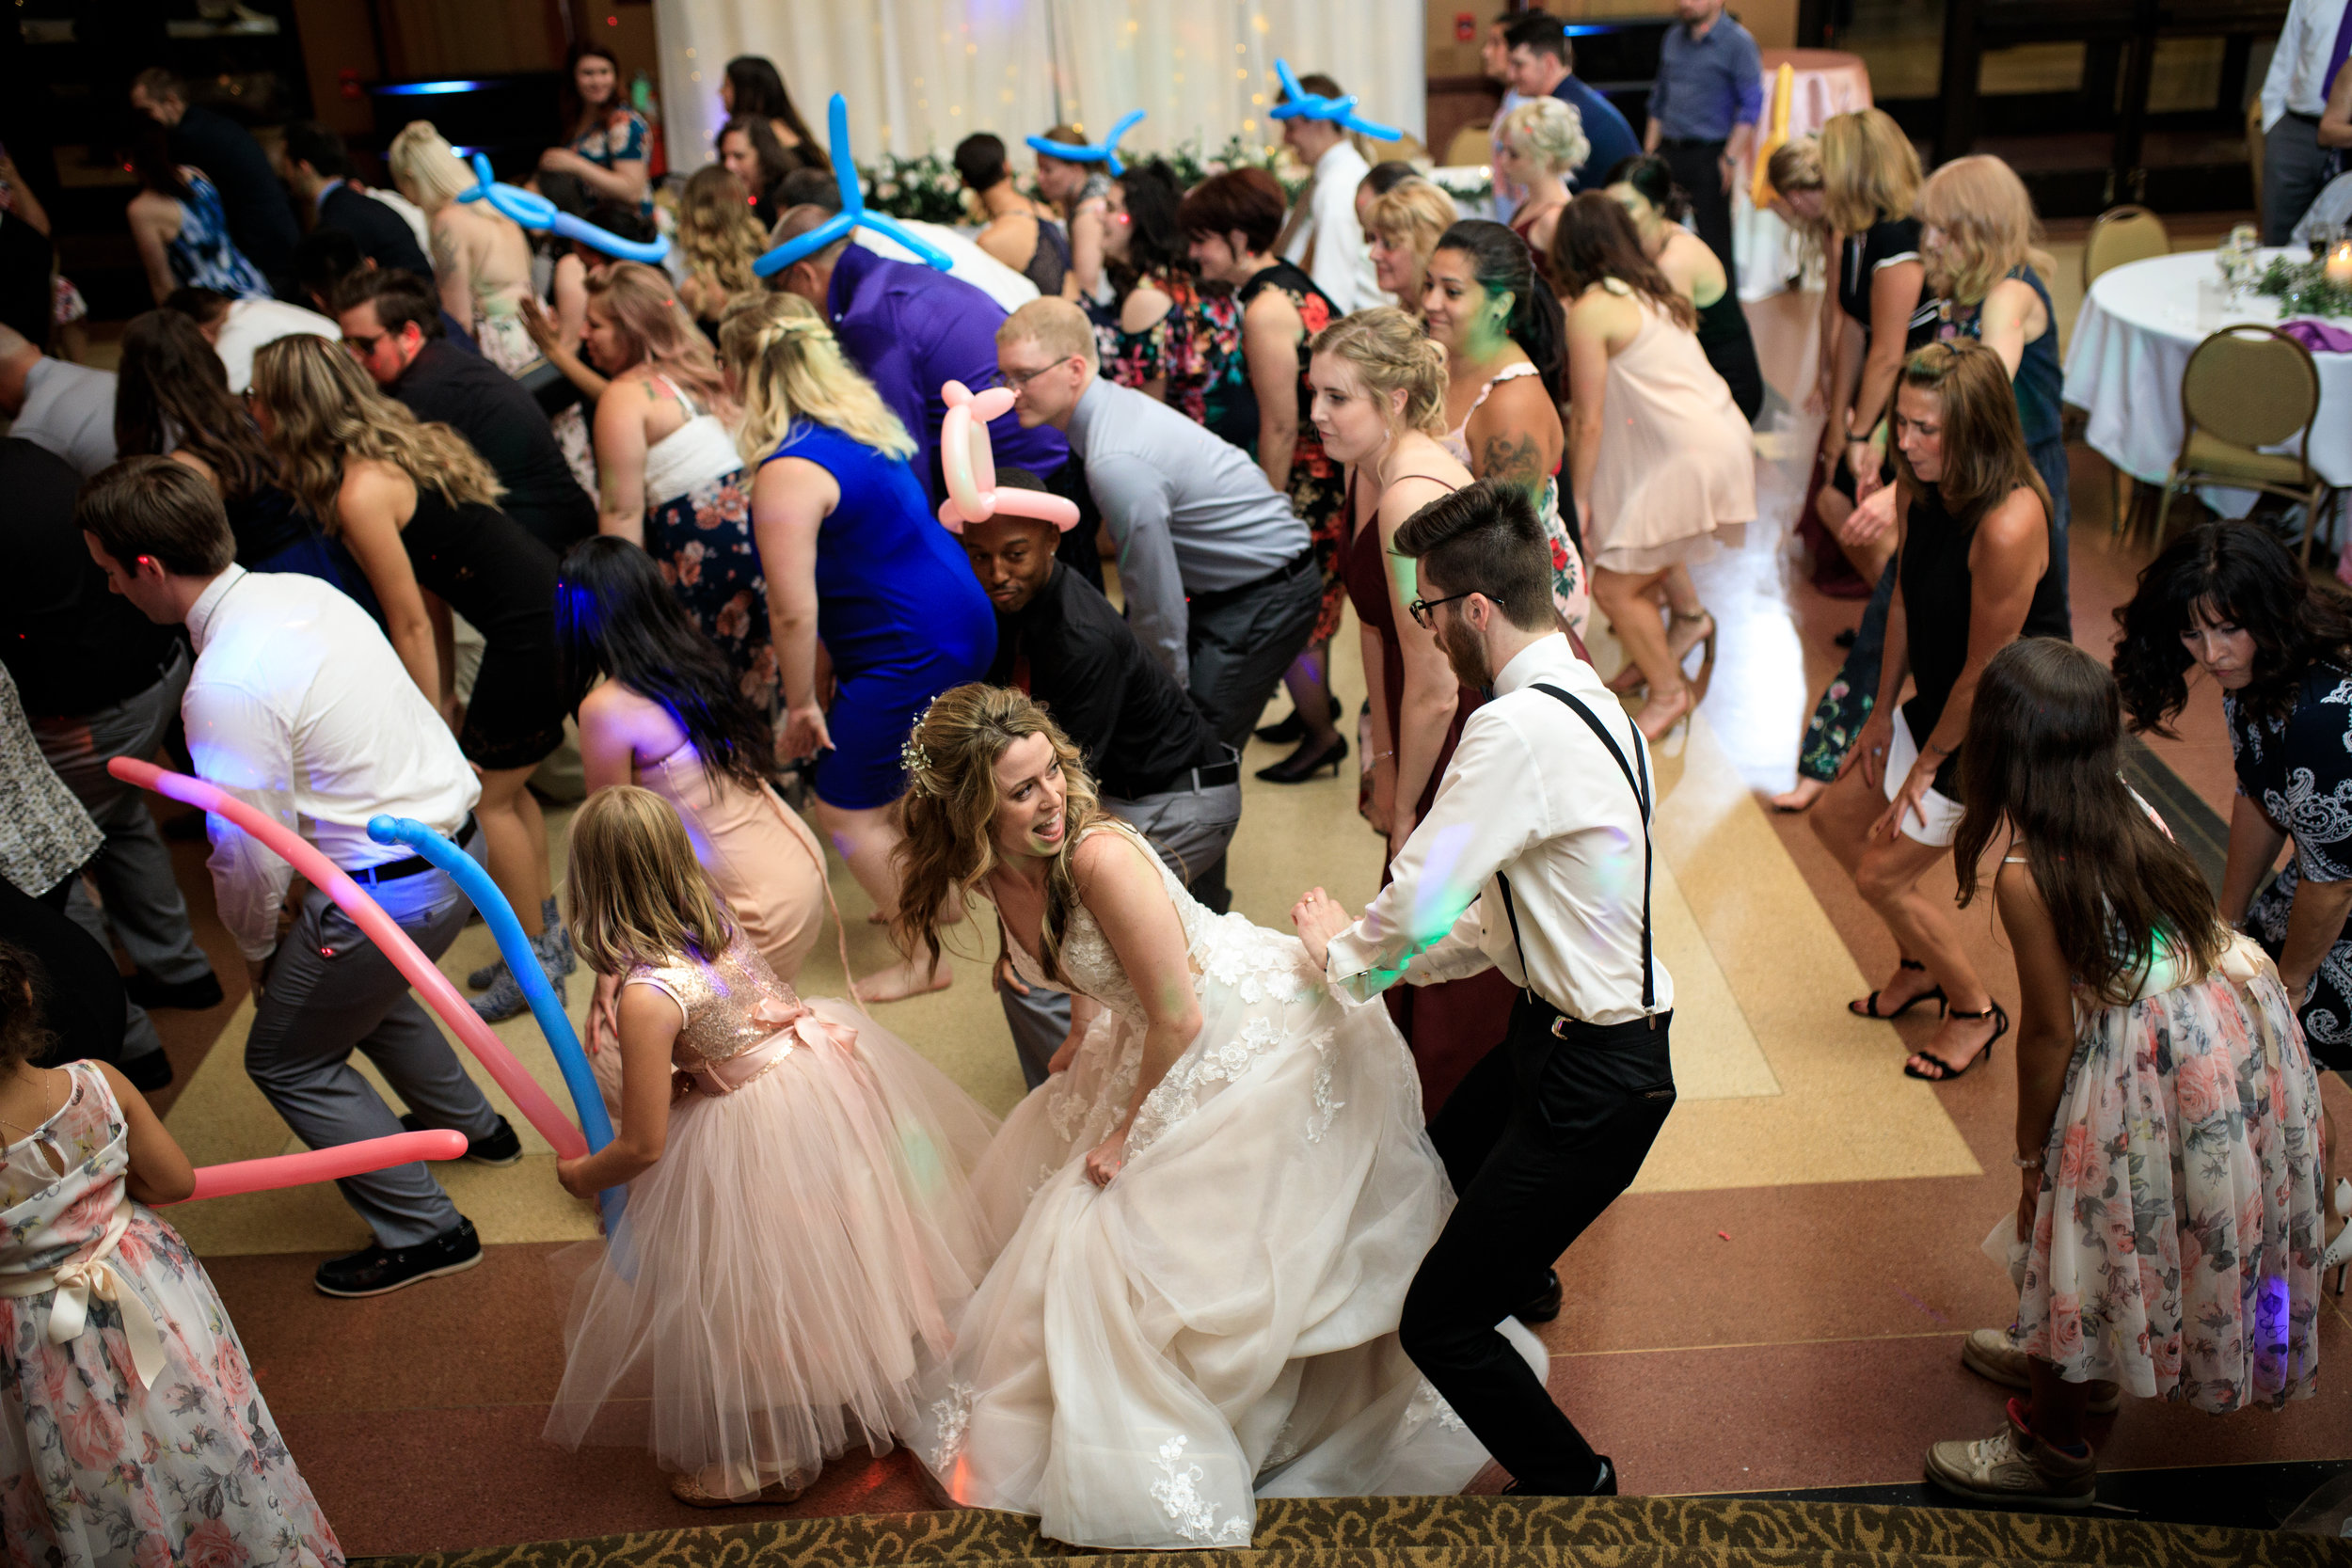 Hilarious-funny-bride-and-groom-take-wedding-photos-to-next-level25.jpg